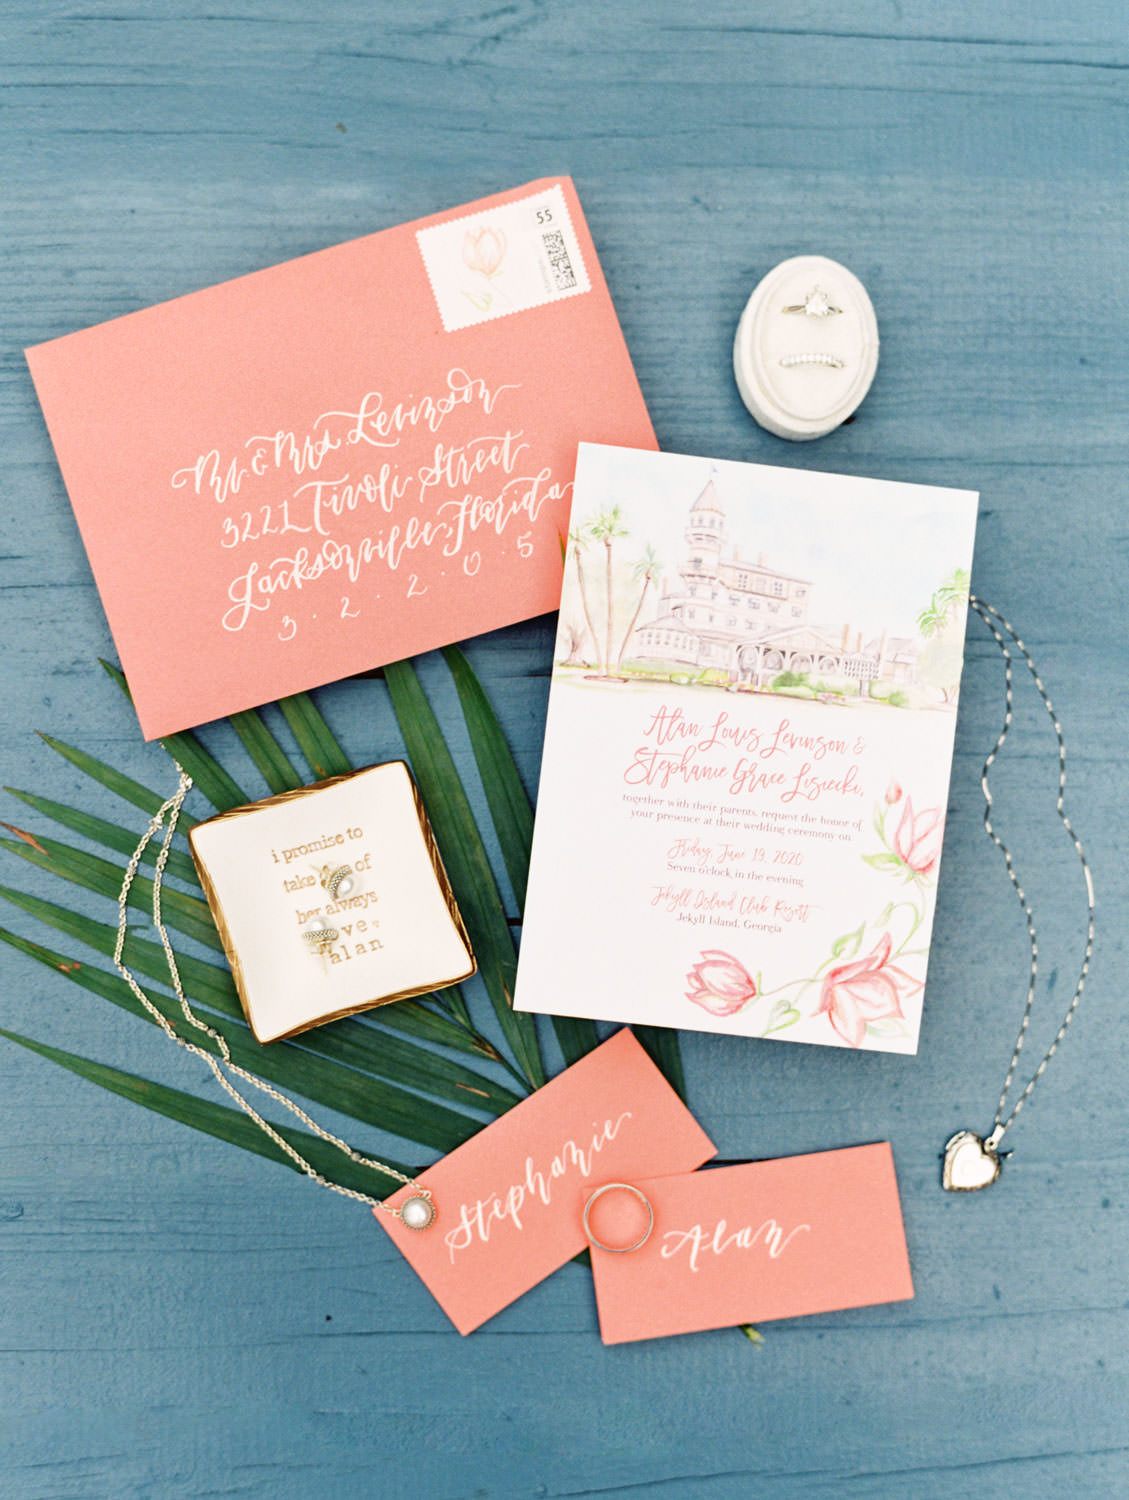 Custom illustrated venue on wedding invitations with coral colored envelopes. Wedding film photography at Jekyll Island Club Resort by Cavin Elizabeth Photography